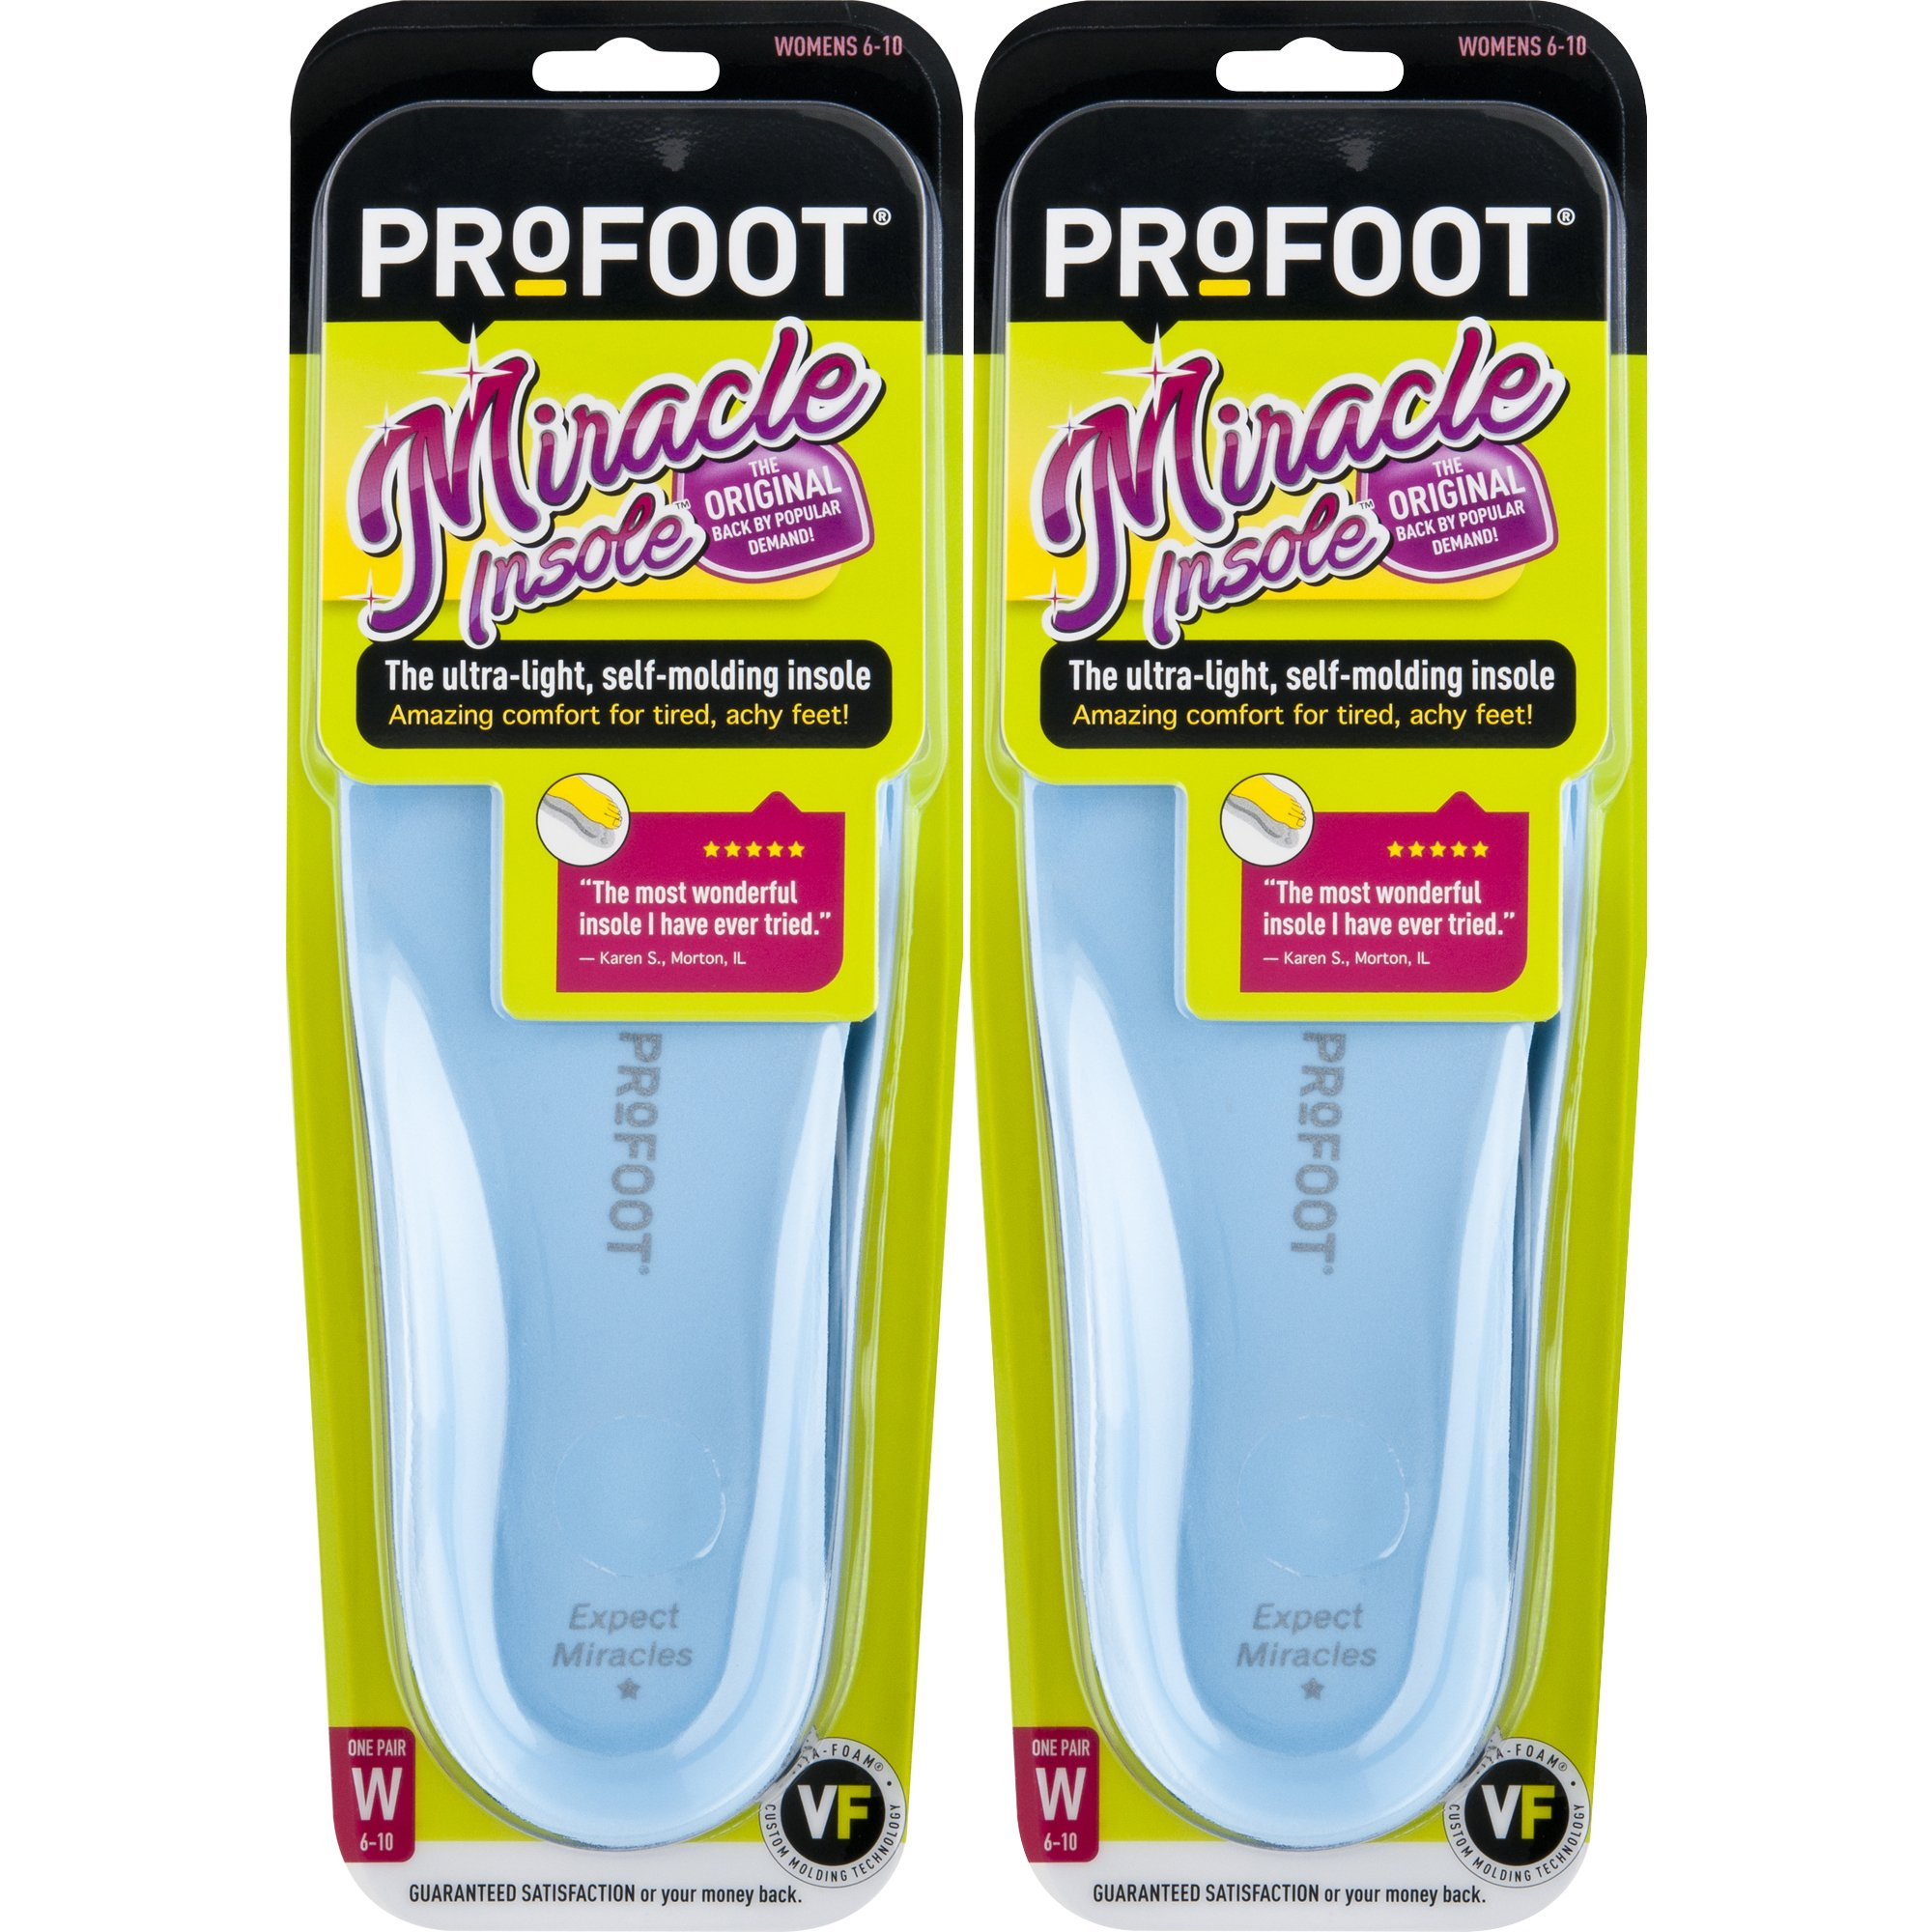 ProFoot Original Miracle Molding Insoles Women's Sizes 6-10, 2 Pair (Colors May Vary), 2-Layer Insole with Memory-Foam Technology, for Relief from Sore Feet and Aching Heels